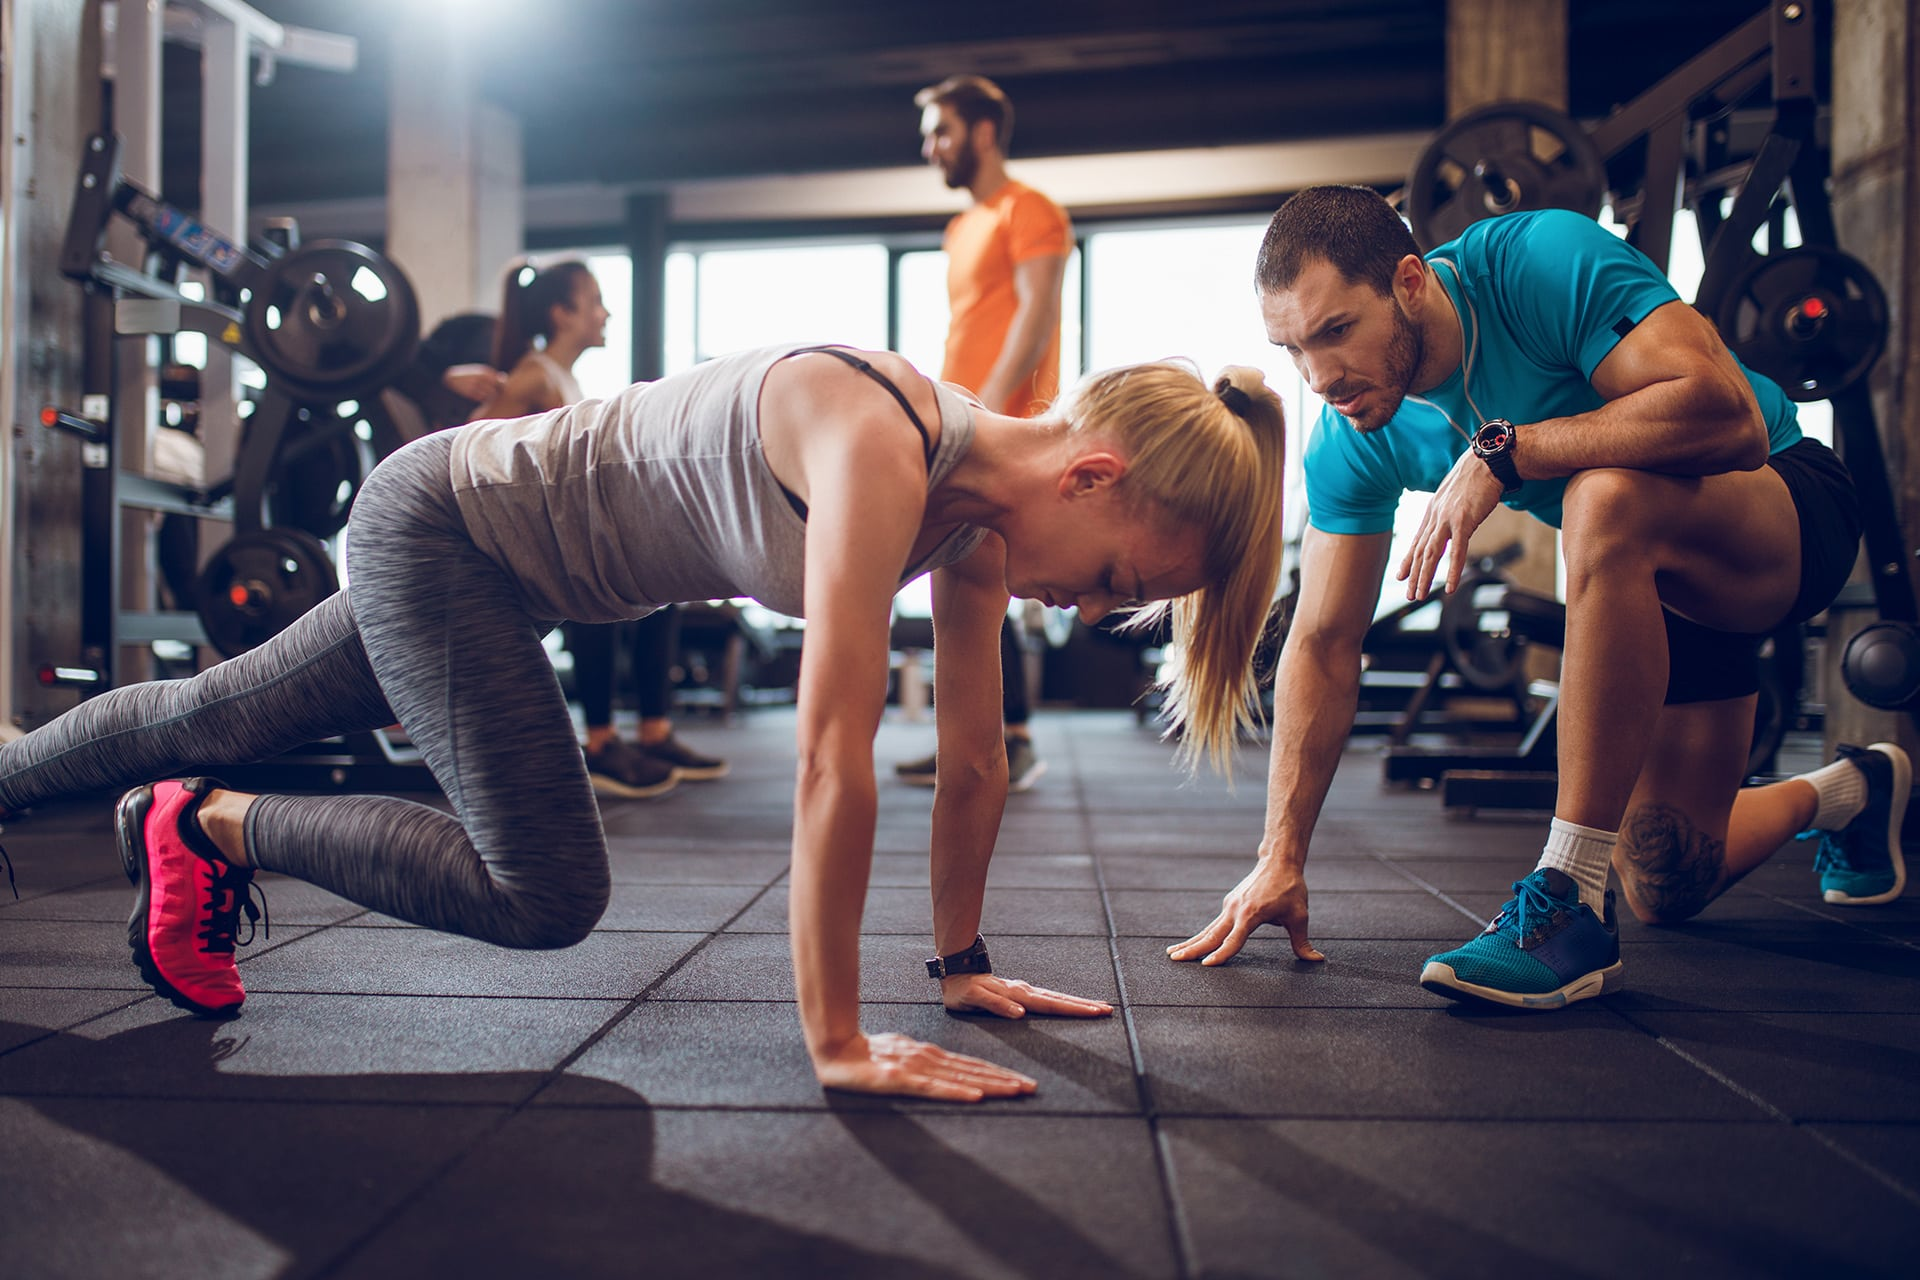 Male personal trainer encourages woman while she exercises